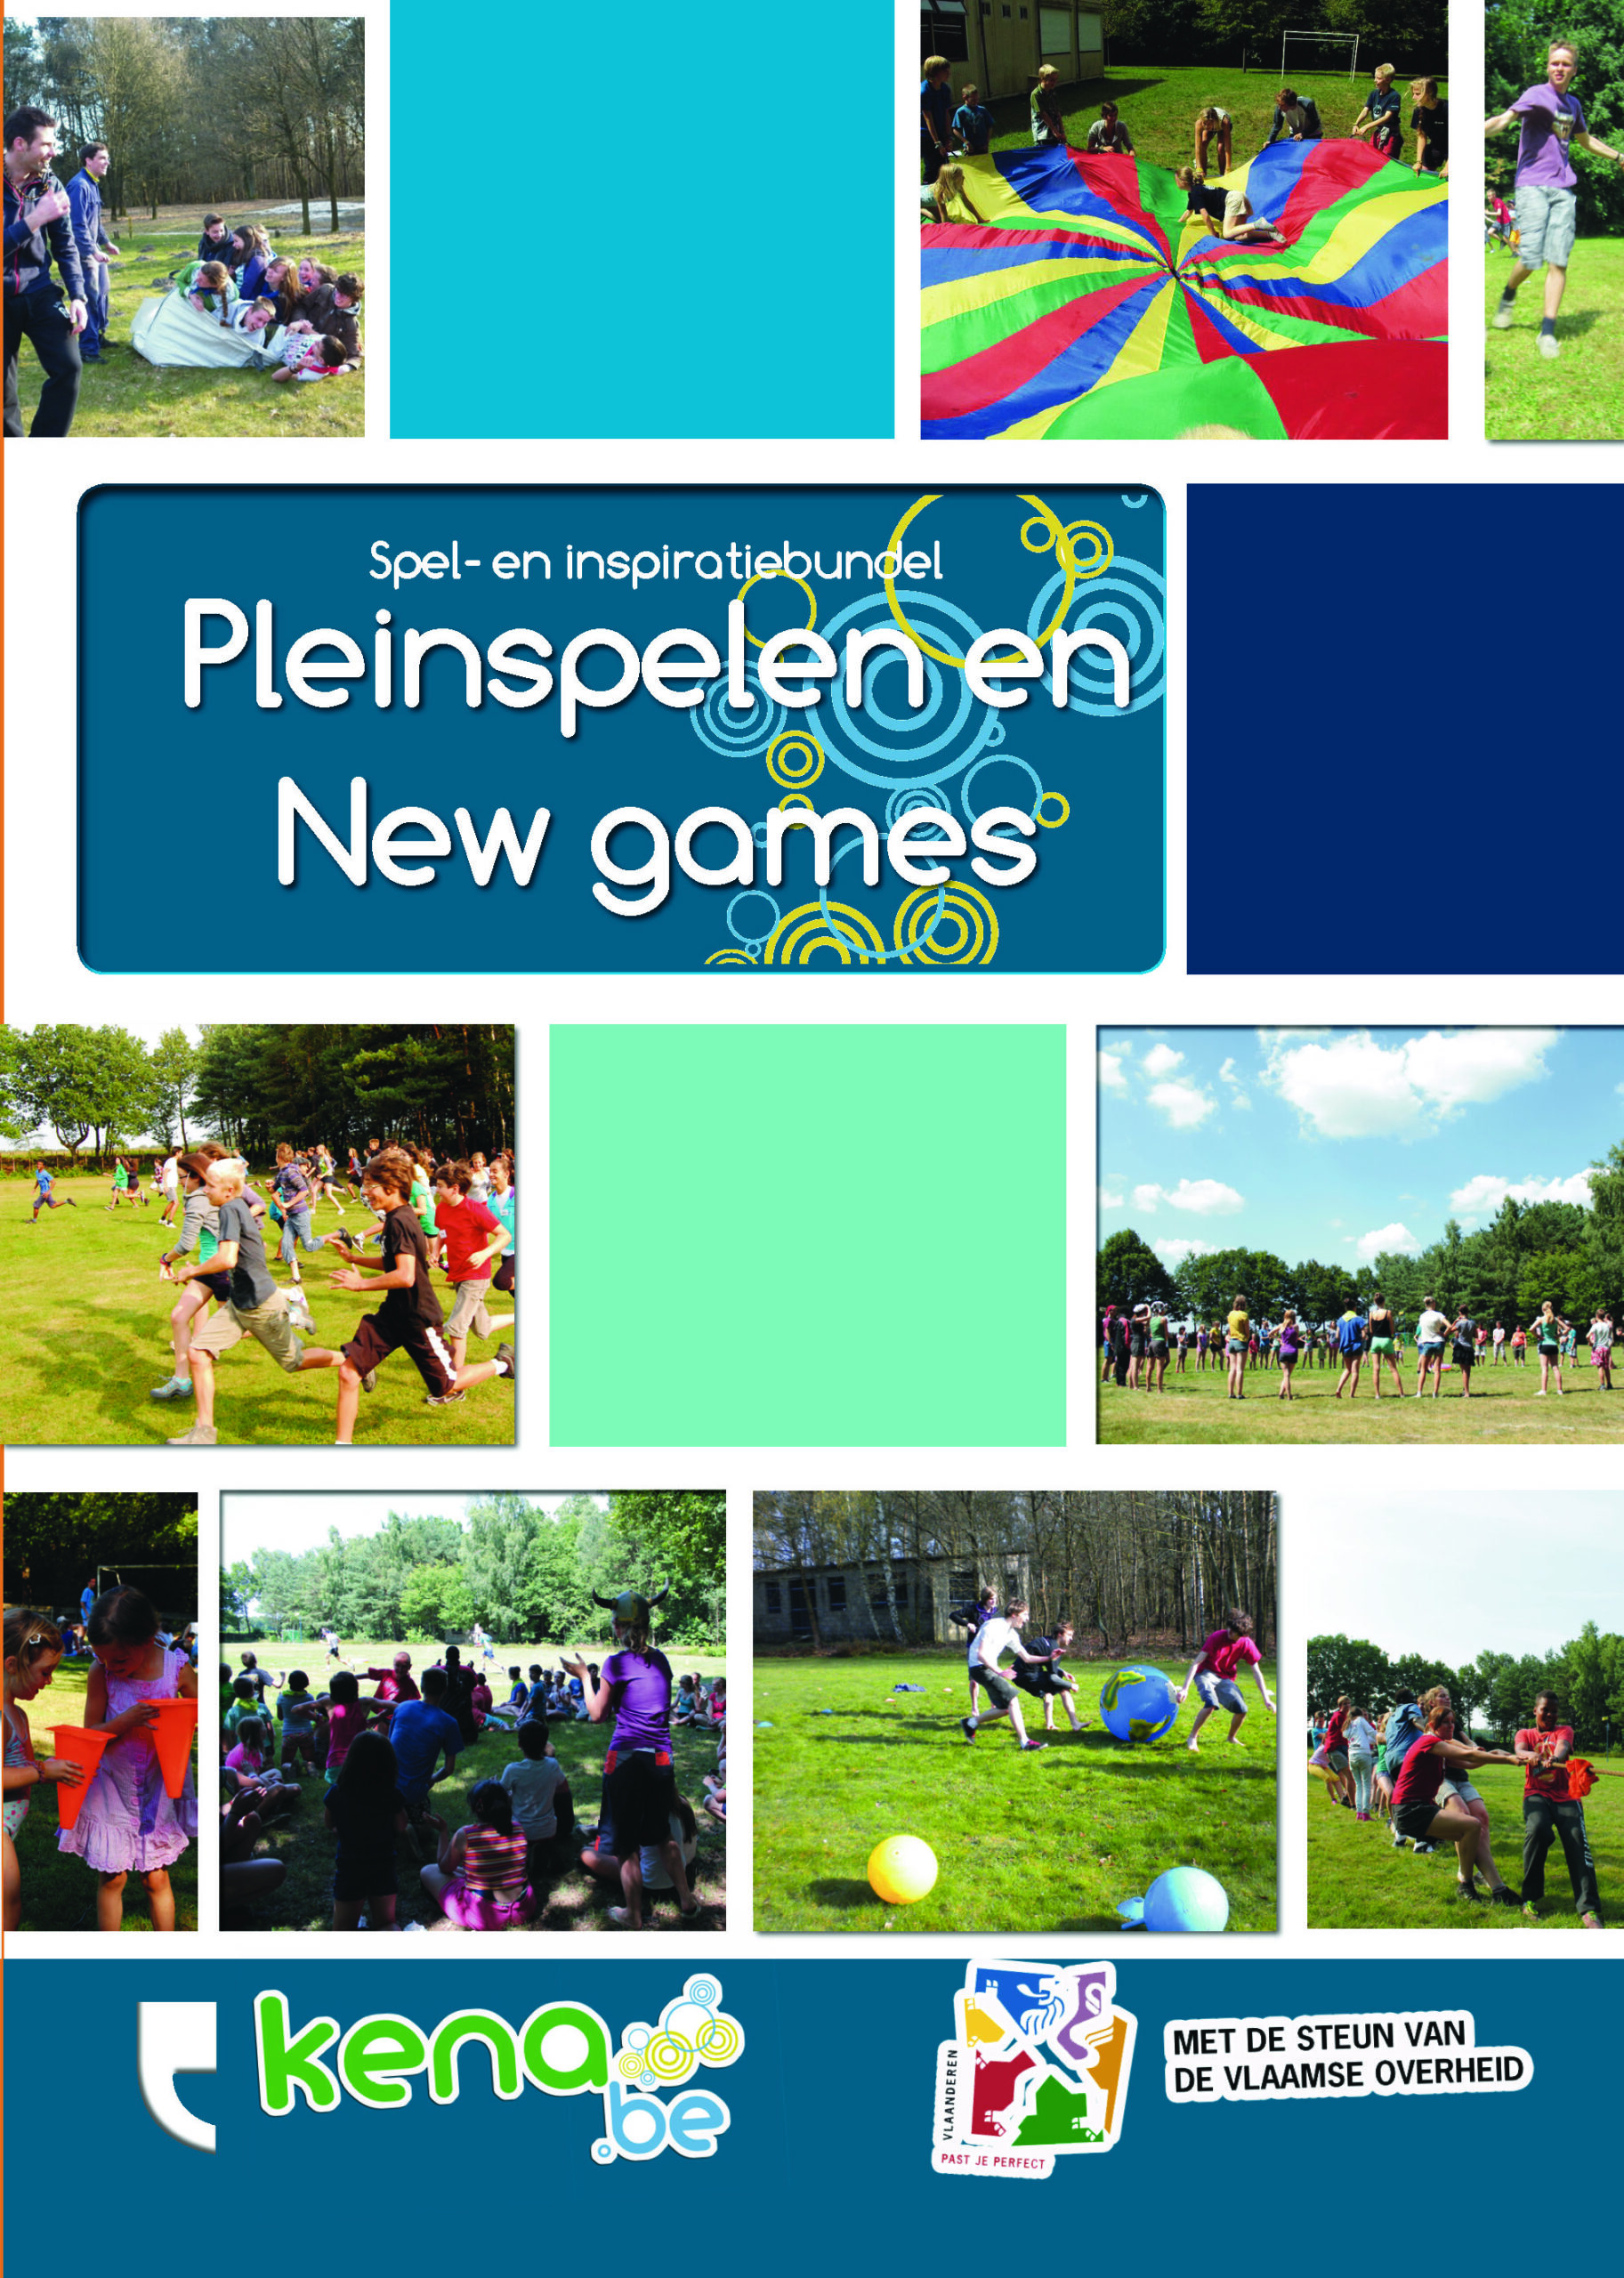 Pleinspelen & New games